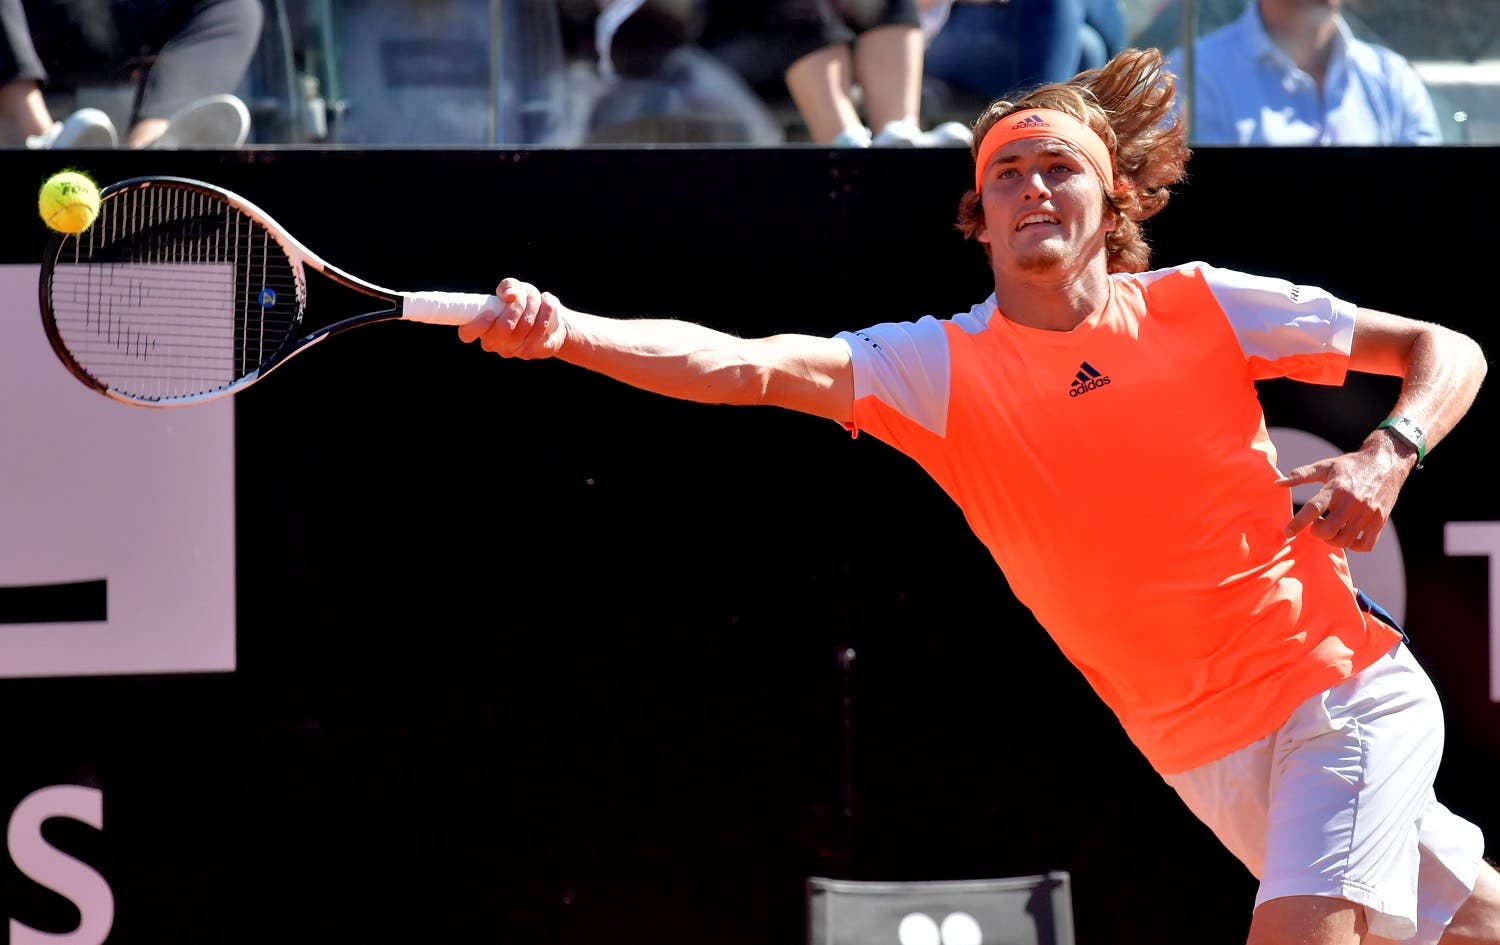 Alexander Zverev of Germany hits a return to John Isner of USA during their semi-final match at the ATP Tennis Open tournament at the Foro Italico on May 20, 2017 in Rome. (AFP)